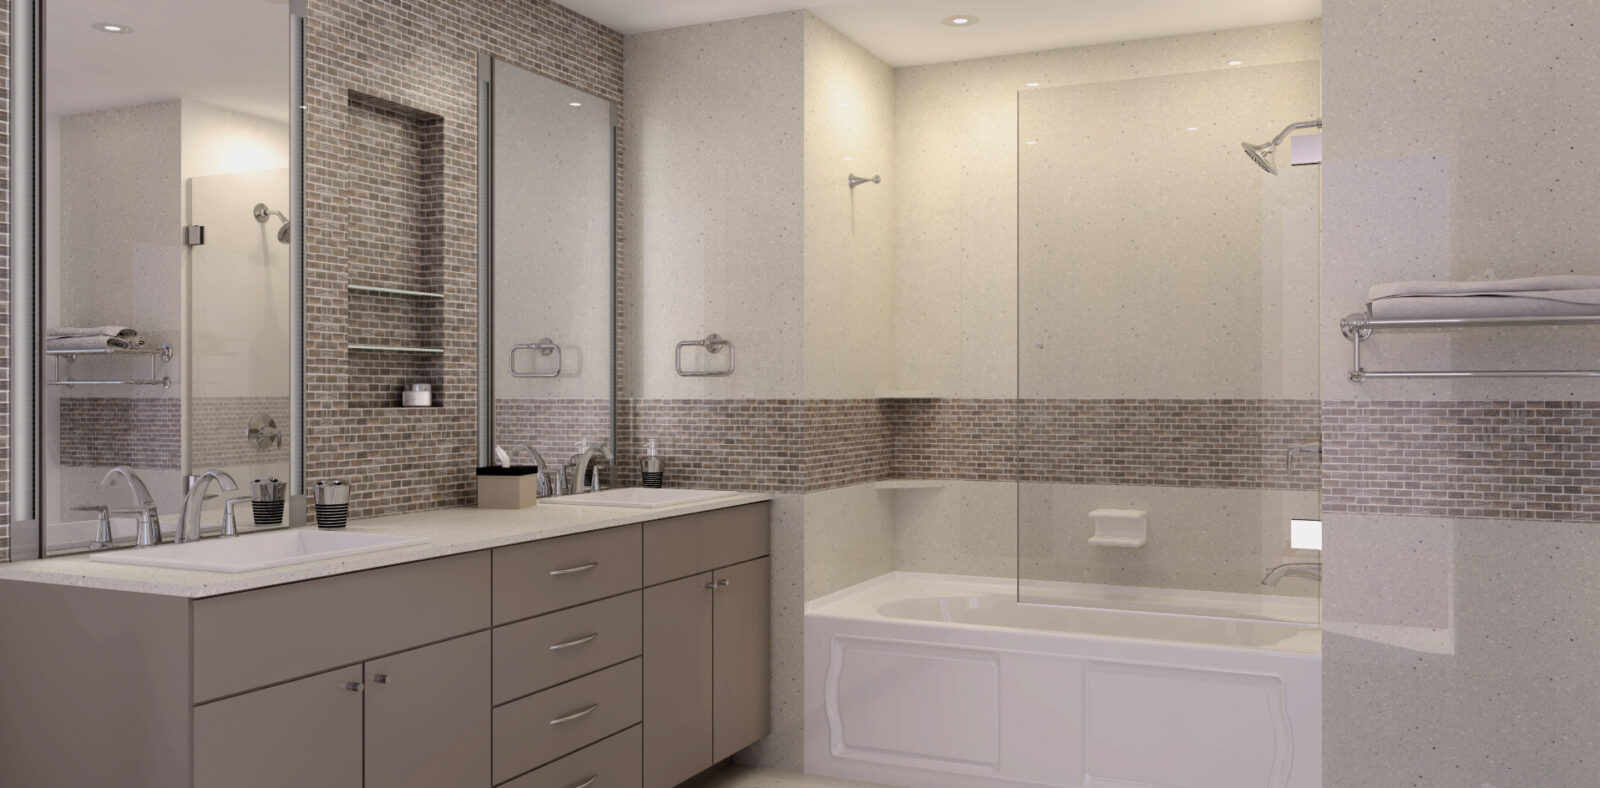 Neutral Colors For Your Bathroom Design